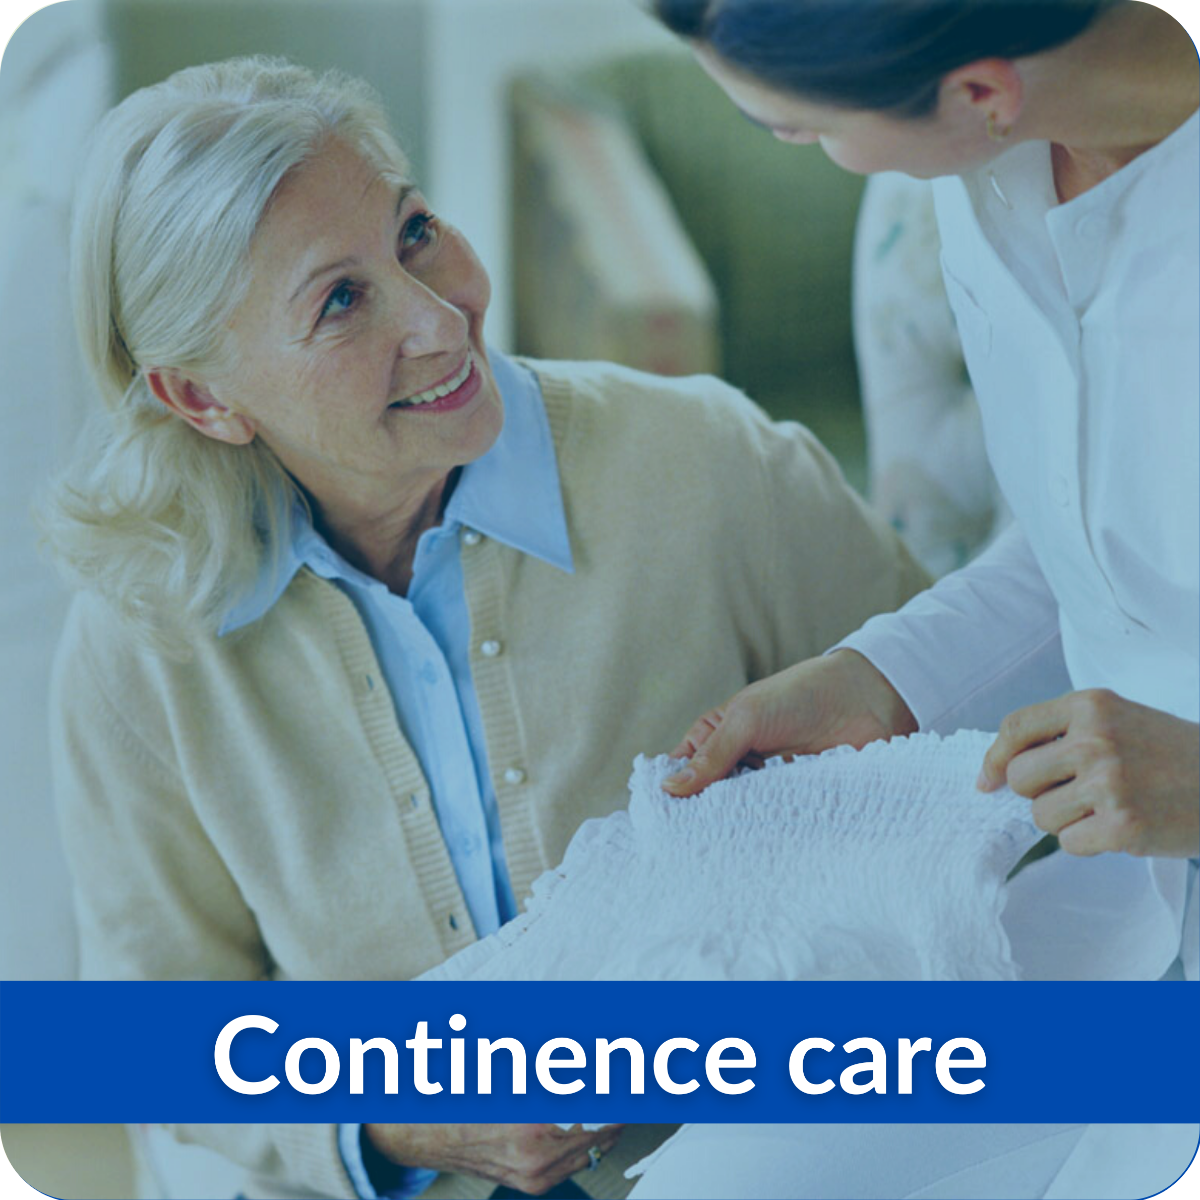 NDIS Consumables & Assistive Technology - Continence Care